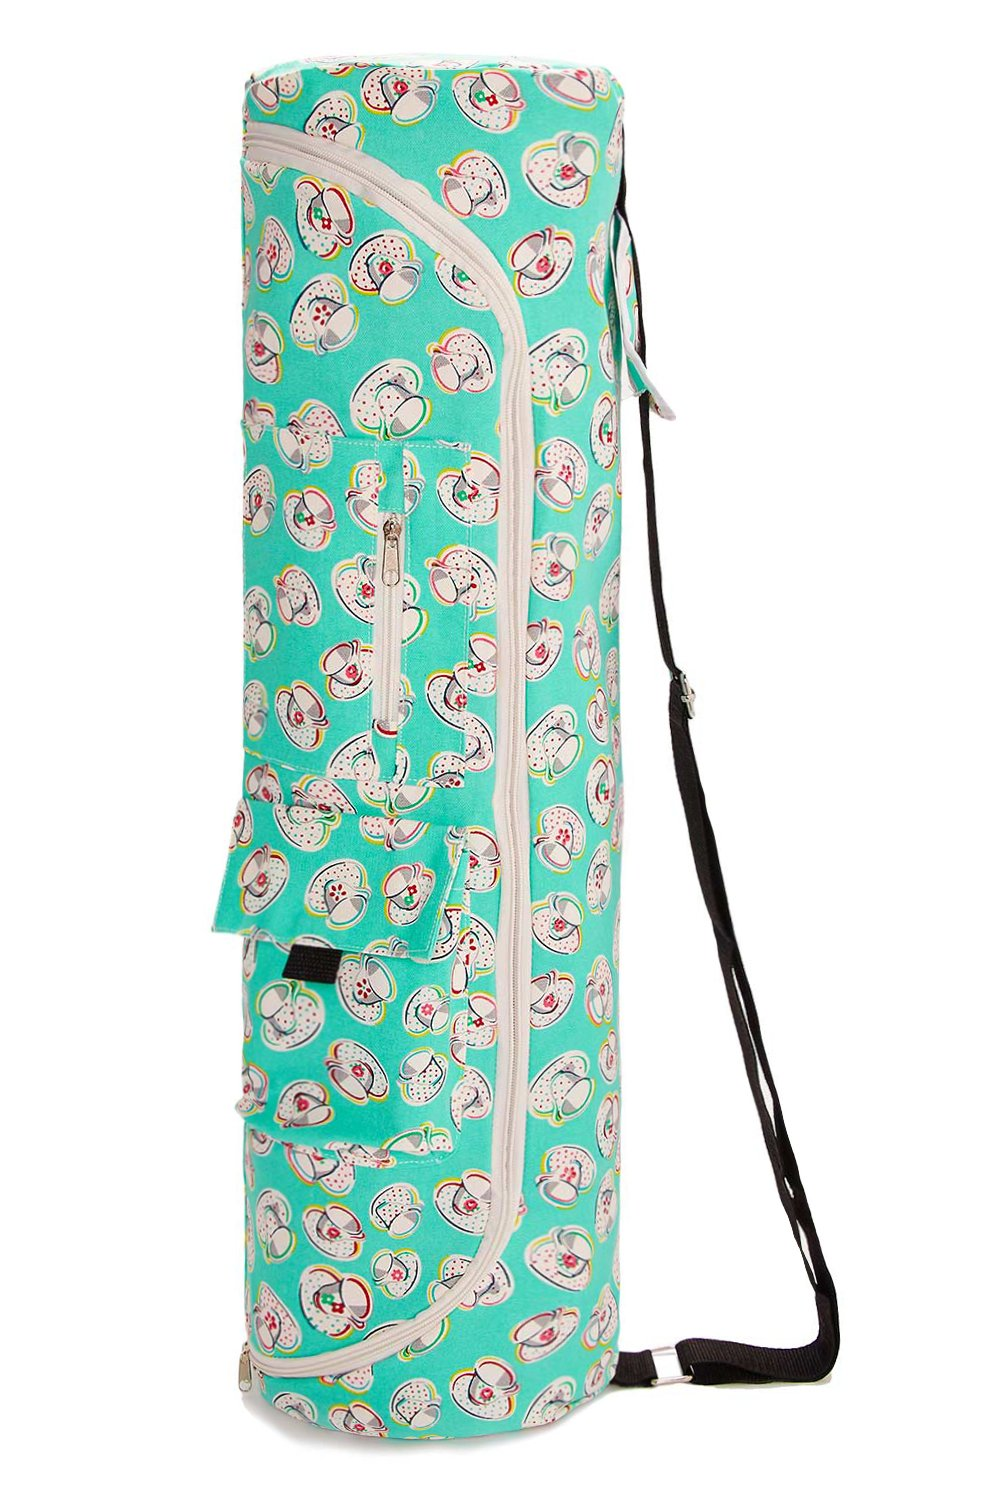 TUONROAD Yoga Mat Bag Printed Full-Zip Exercise Yoga Mat Carrier Bag with Adjustable Strap Extra Large Yoga Mat Sling Bag with Functional Storage Pockets for Women and Men